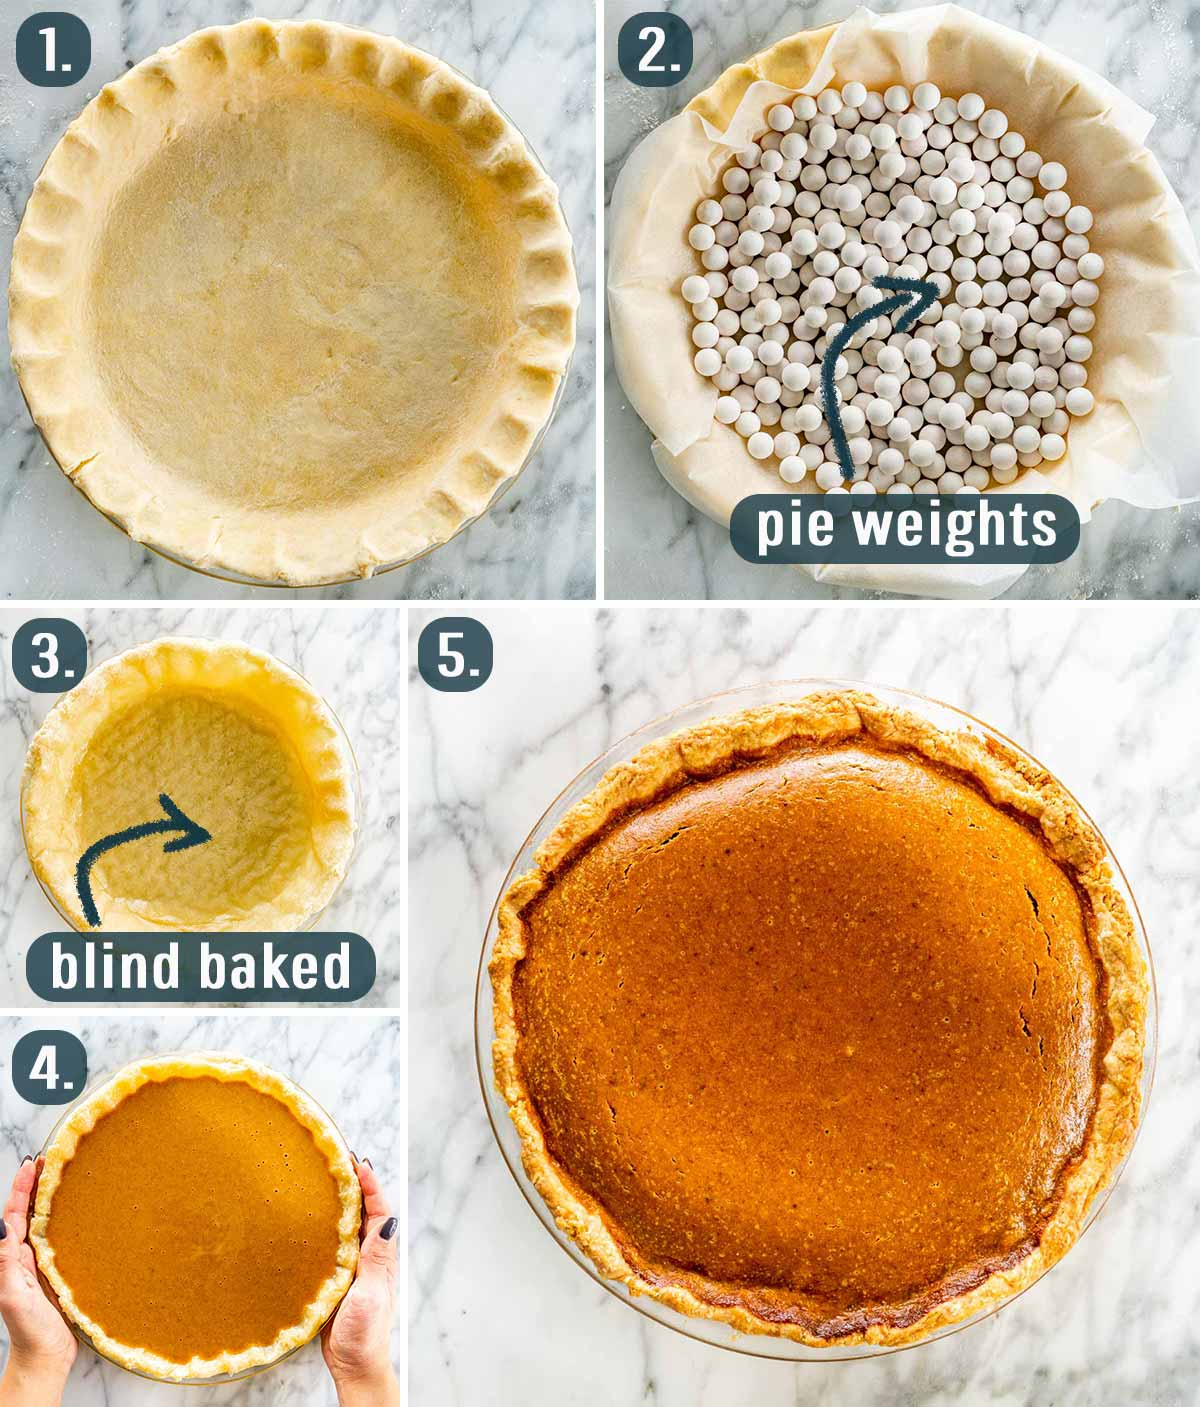 process shots showing how to assemble and bake a pumpkin pie.